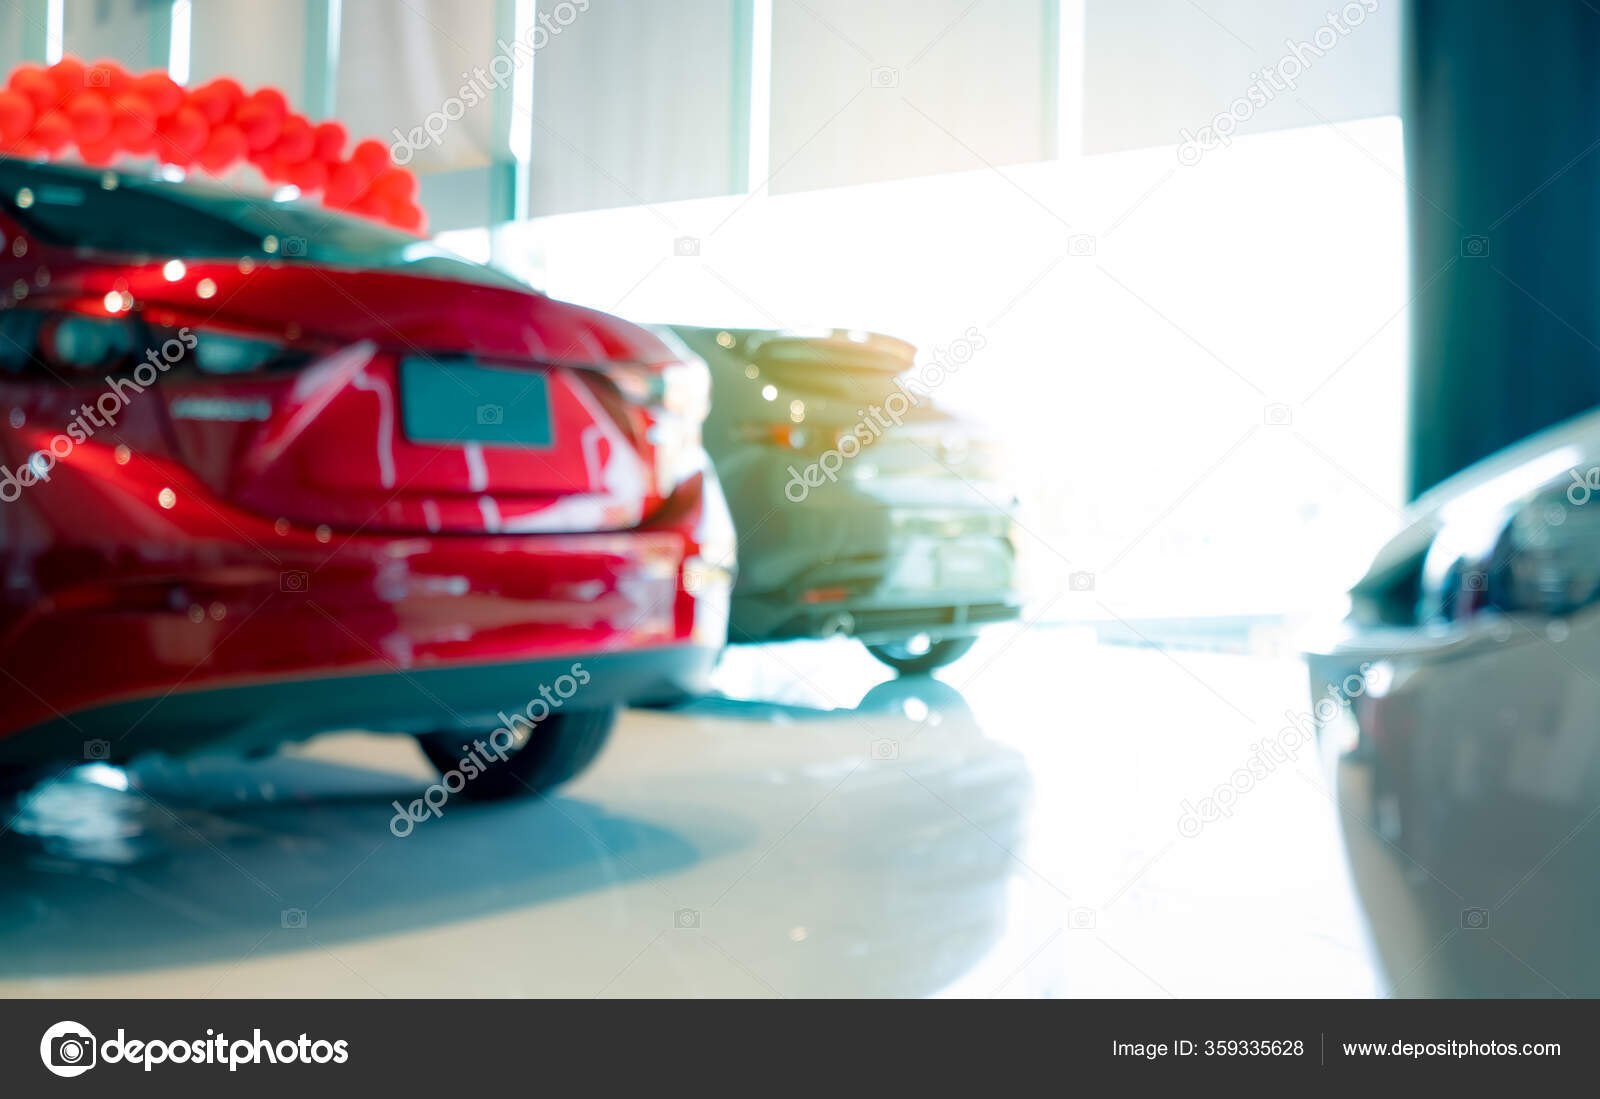 Blurred Rear View Red Car Luxury Car Parked Modern Showroom Stock Photo C Fahroni 359335628